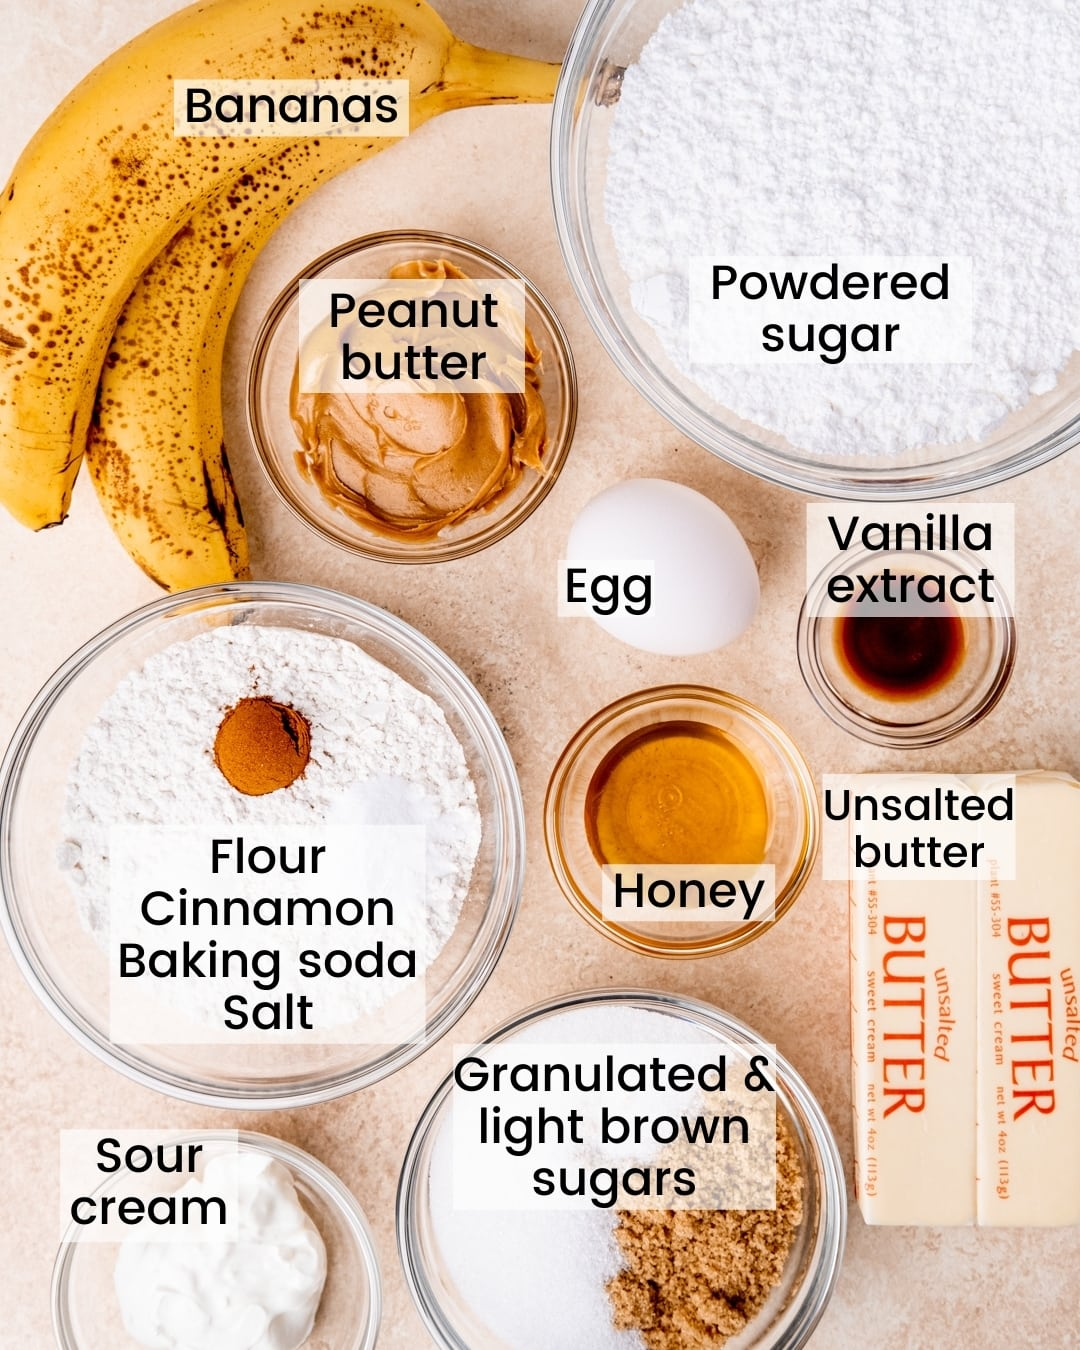 Banana snack cake and peanut butter honey frosting ingredients labeled